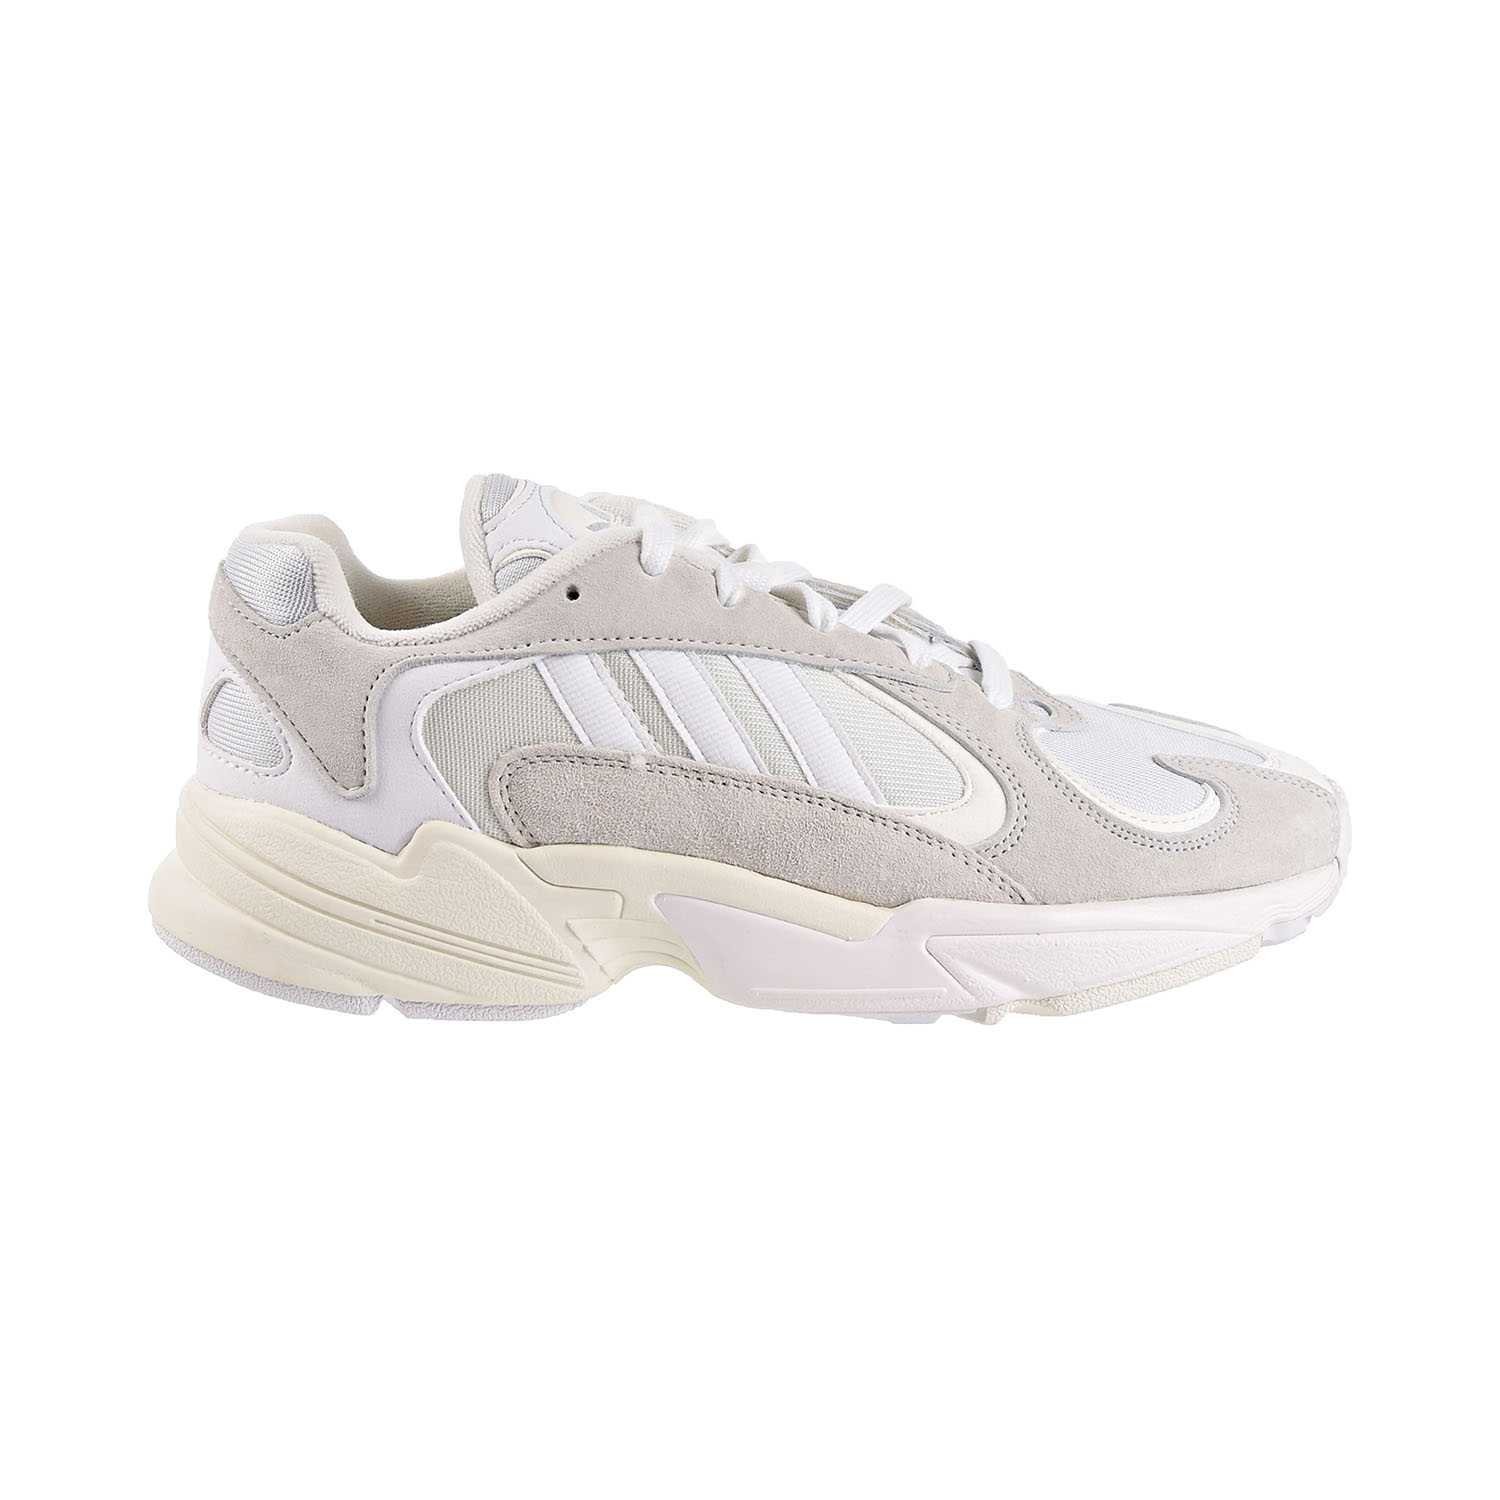 Details about Adidas Yung 1 Mens Shoes Cloud White Cloud White Footwear White b37616